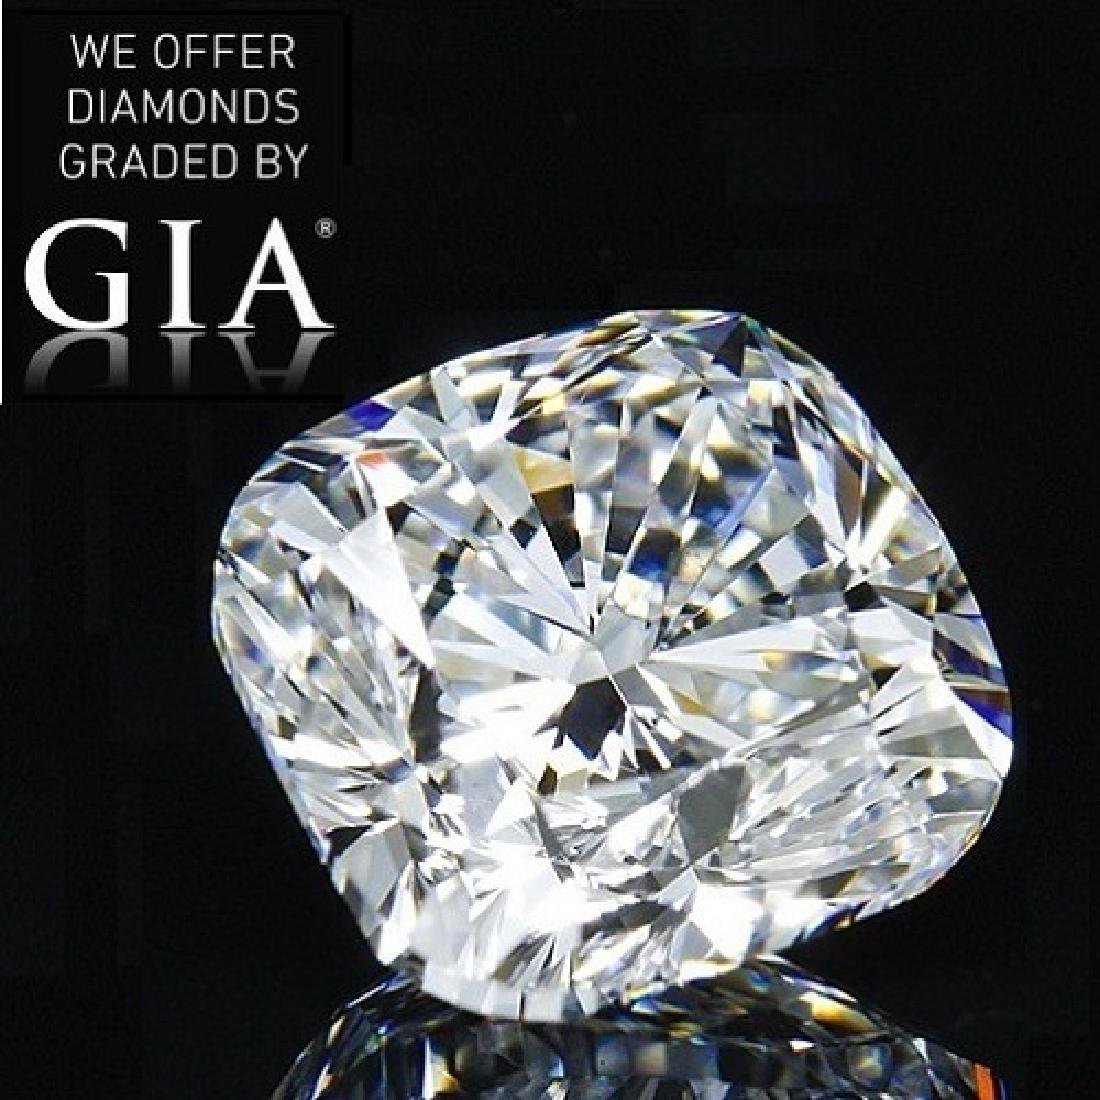 2.01 ct, Color D/VVS2, Cushion cut Diamond